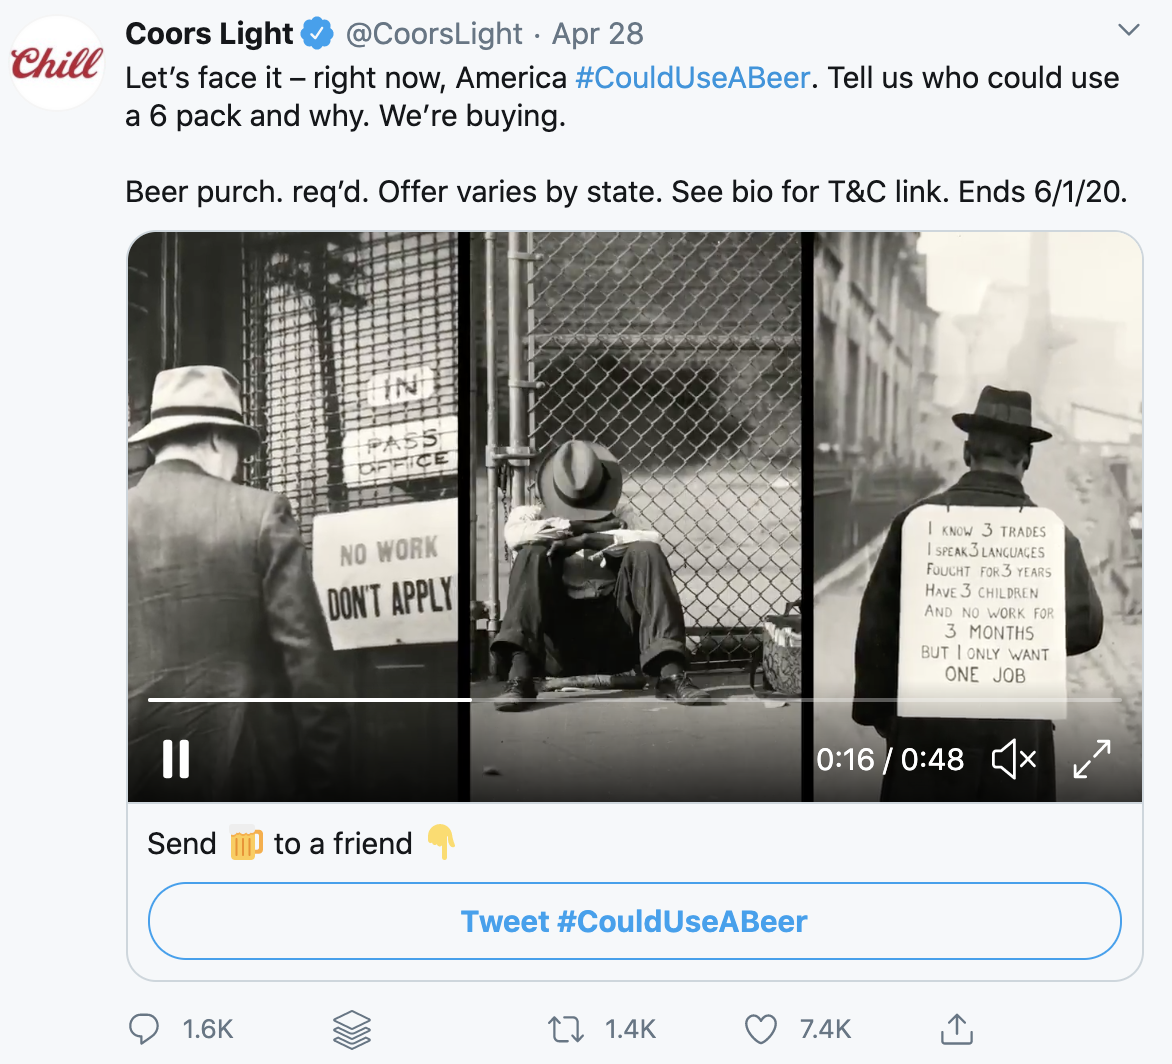 Social media campaign by Coors Light